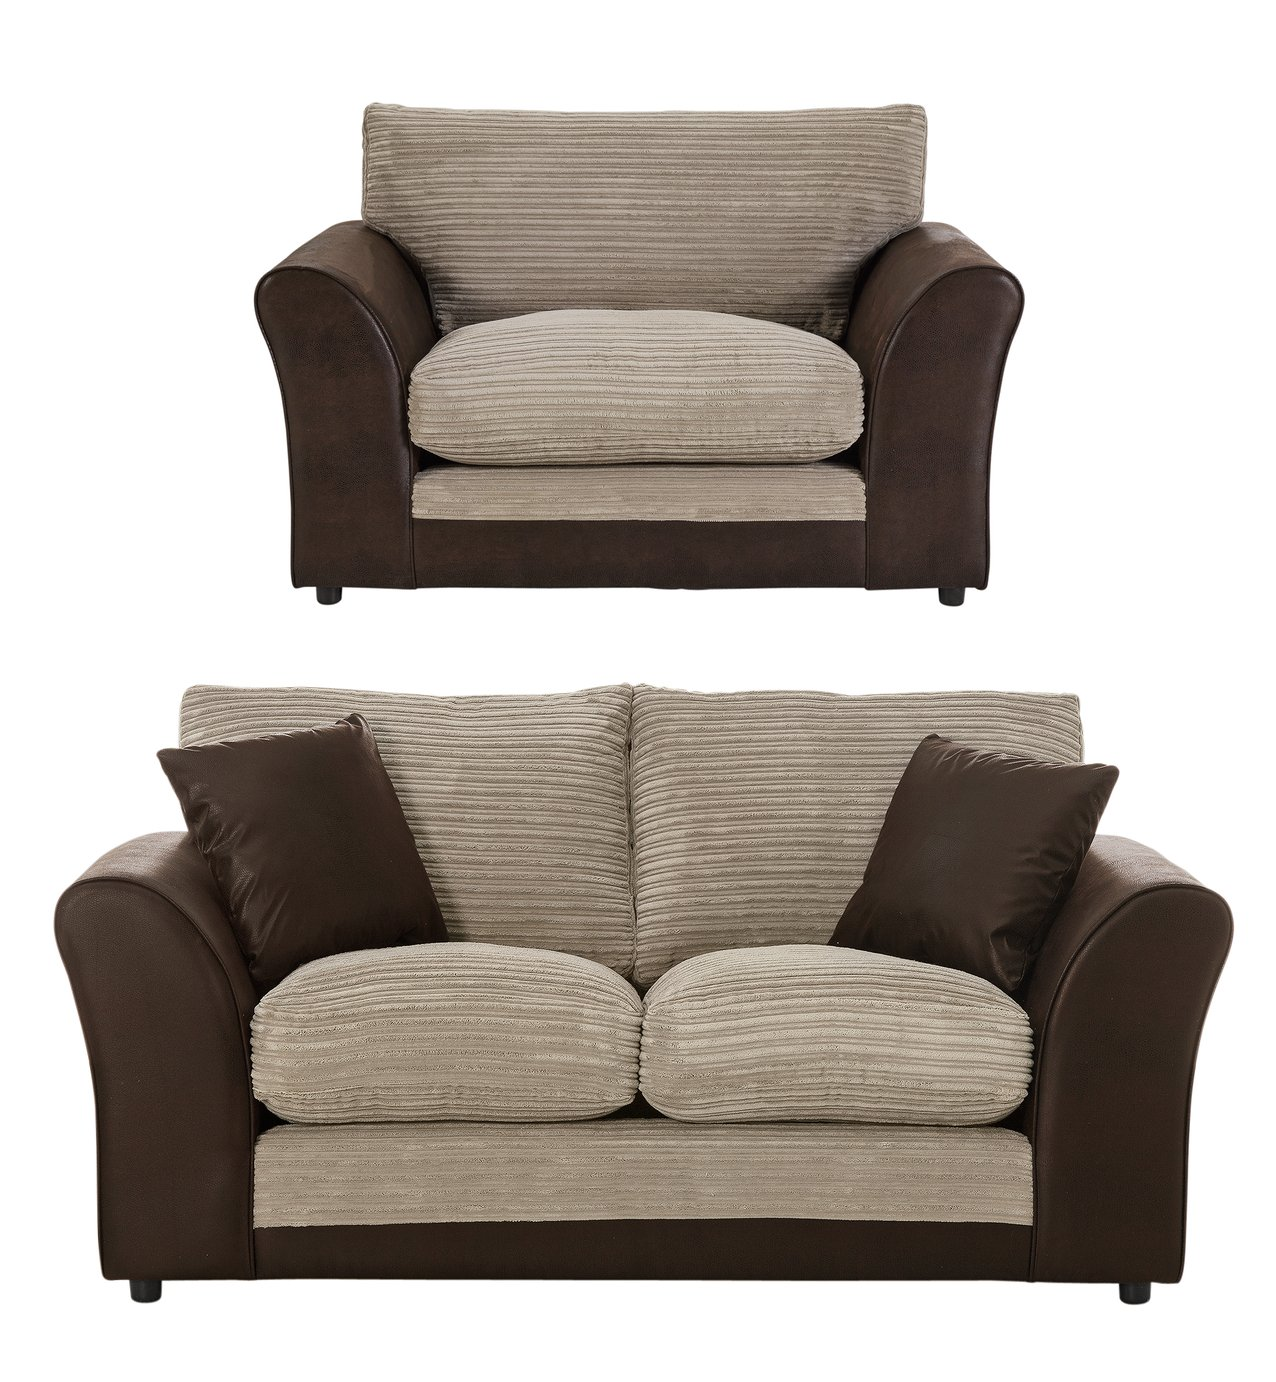 Buy Cream Sofa Packages At Argos Co Uk Your Online Shop